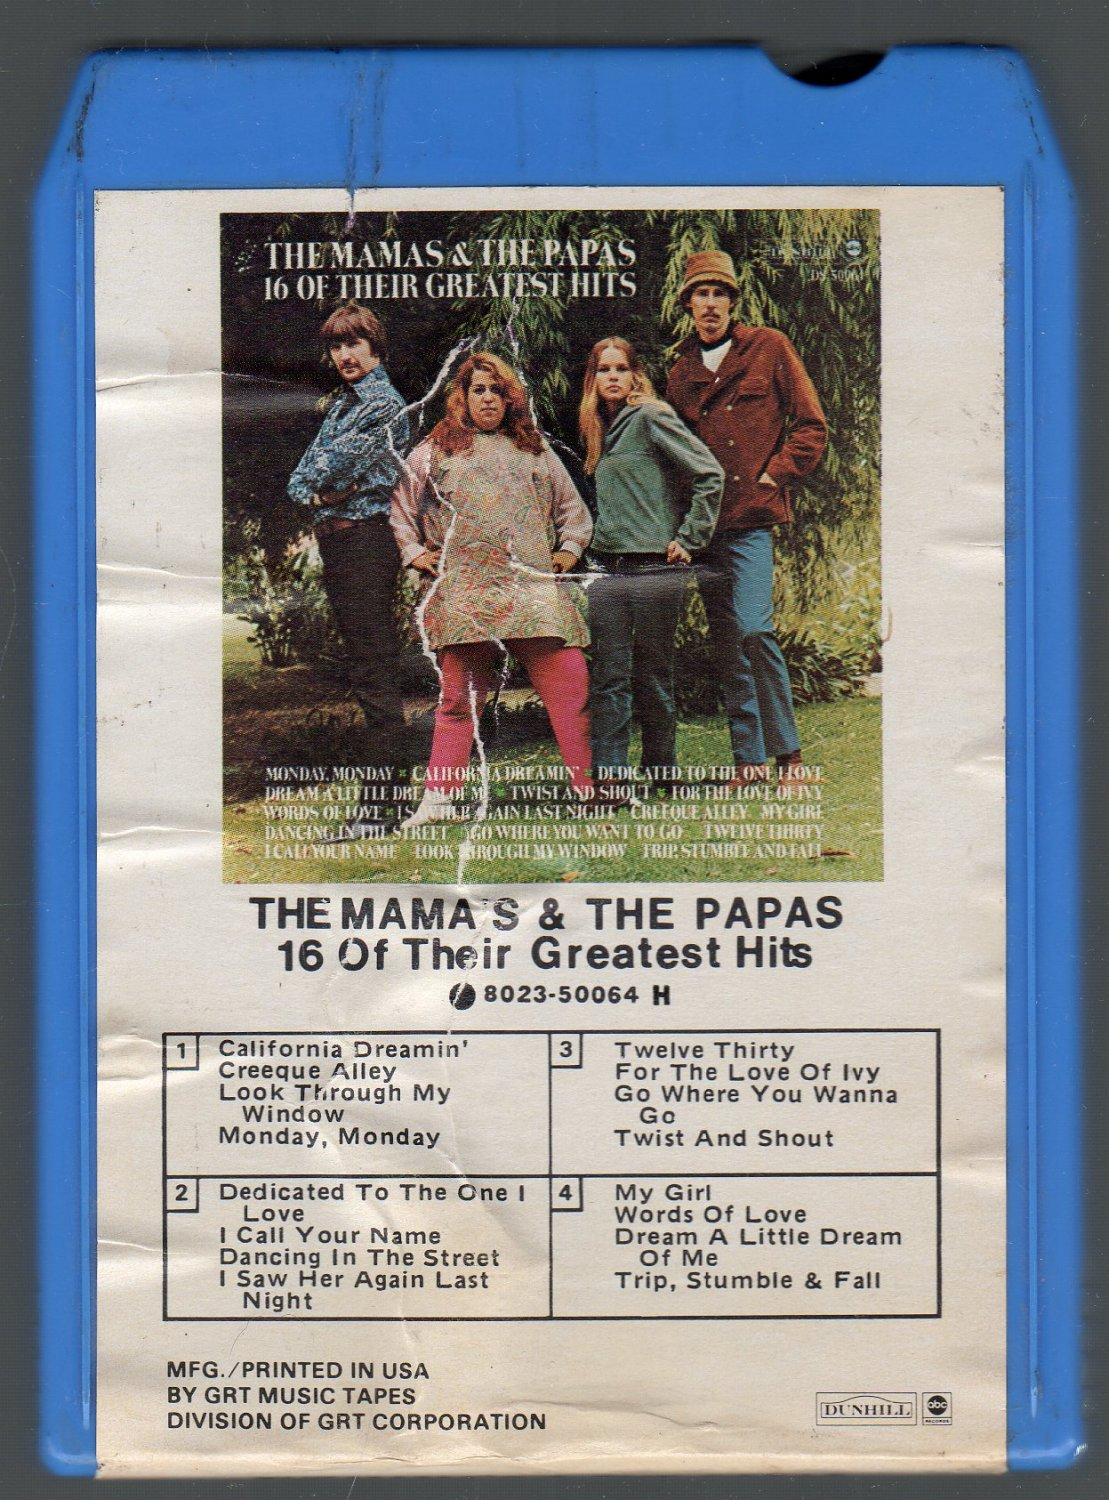 The Mama's & The Papas - 16 Of Their Greatest Hits 8-track tape